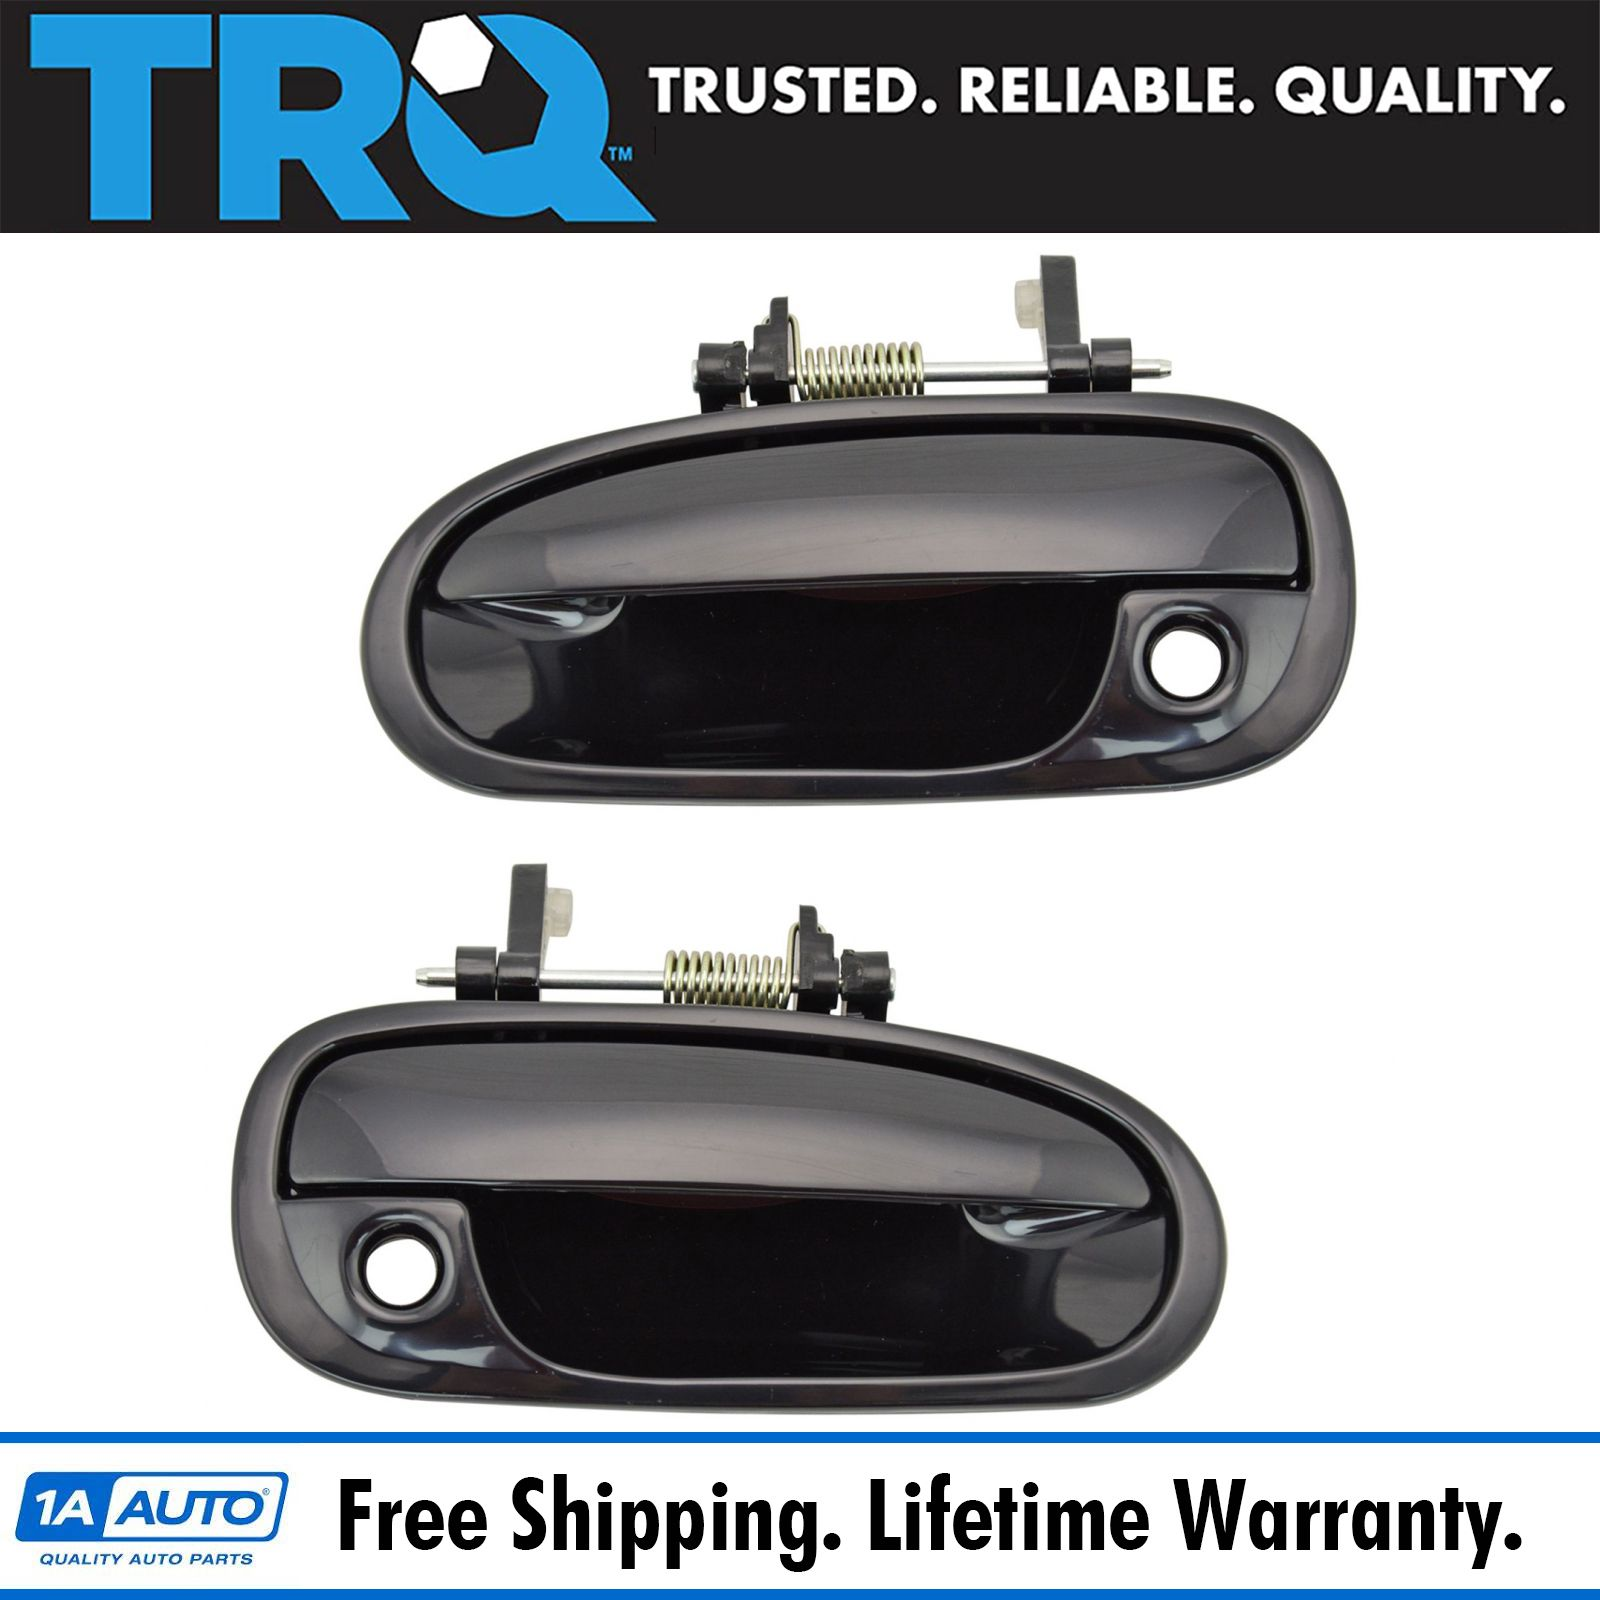 NEW Front Outside pair lh rh Door Handle Black Fits 88-94 Chevrolet GMC Truck